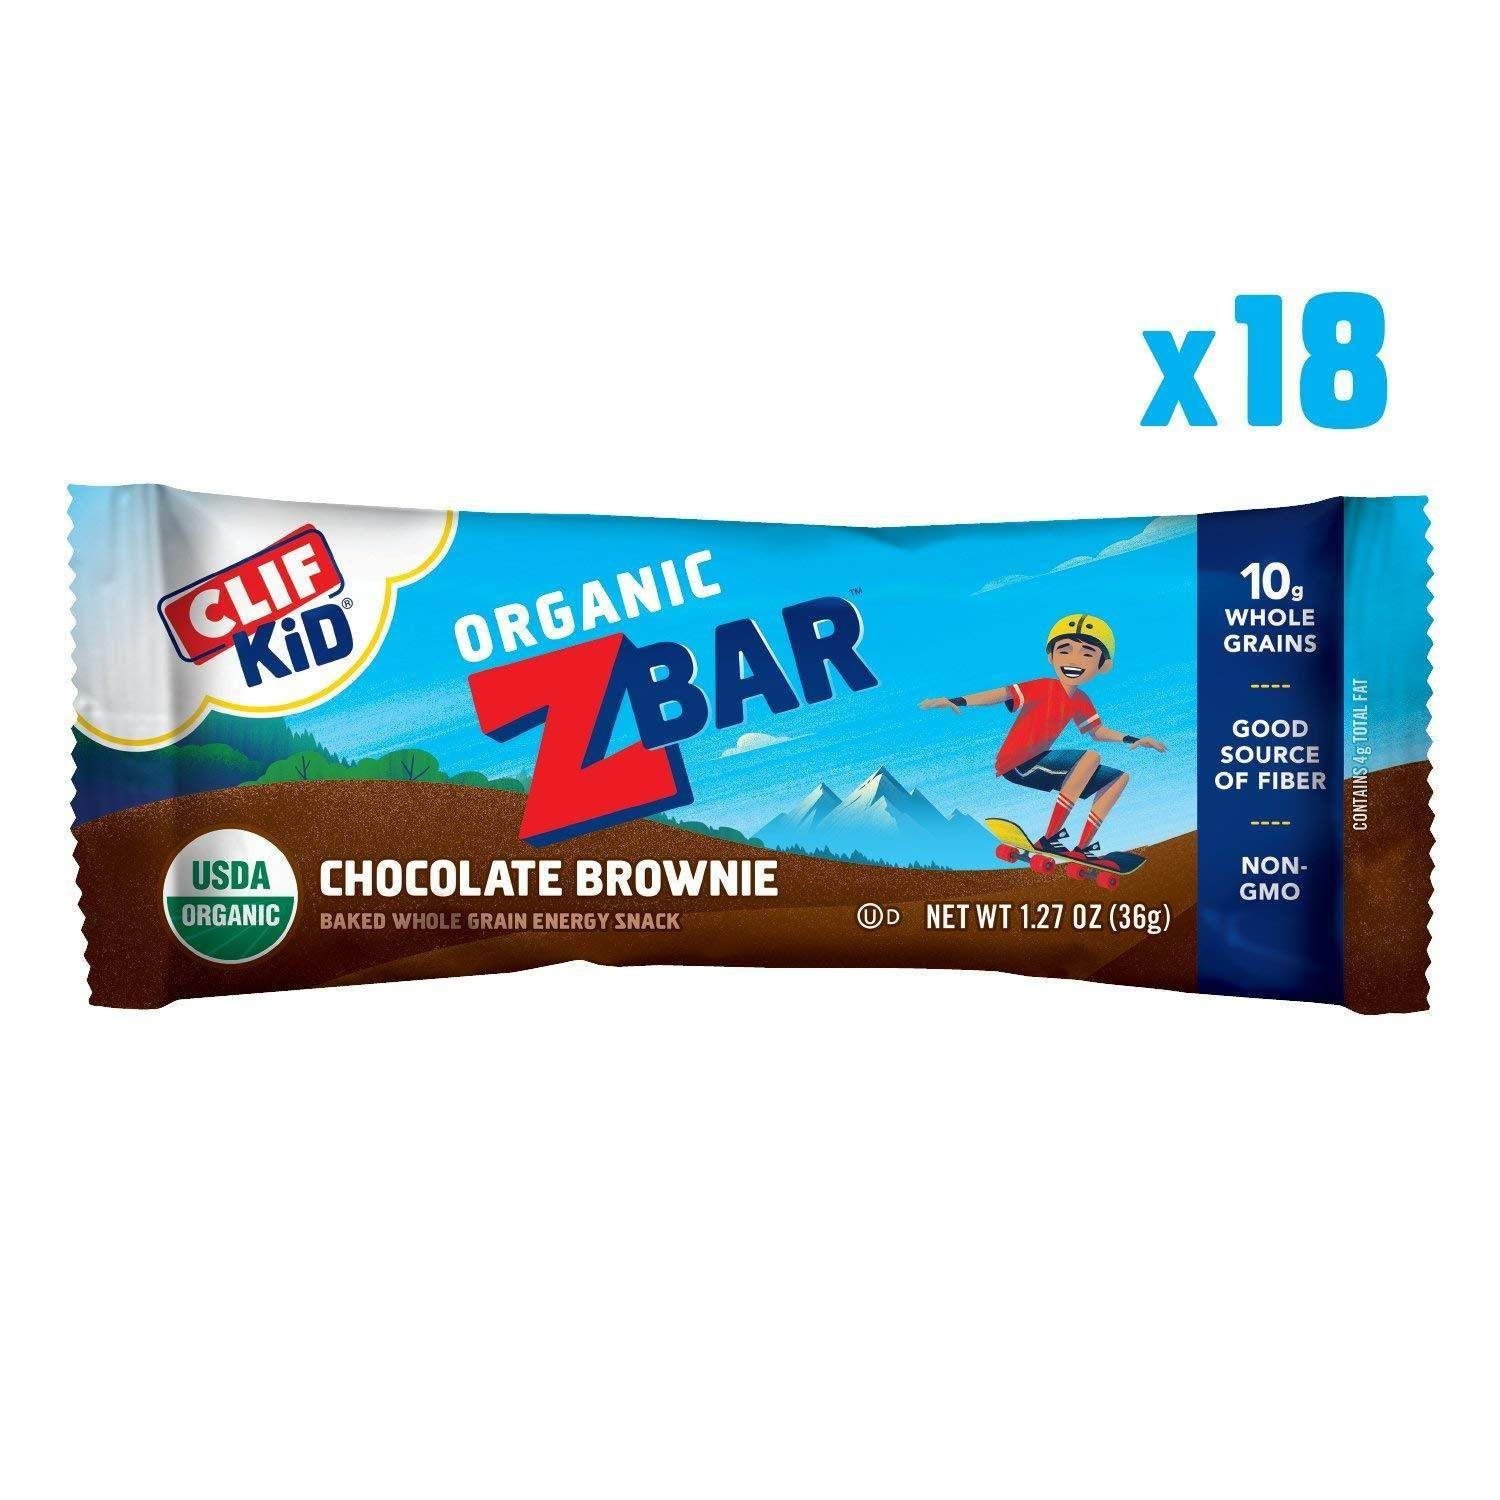 5b1b65ba4a4   7.78 18-Count of 1.27oz Clif Kid Zbar Organic Energy Bar (Chocolate  Brownie)  7.78 or Less w  S S Free Shipping Amazon